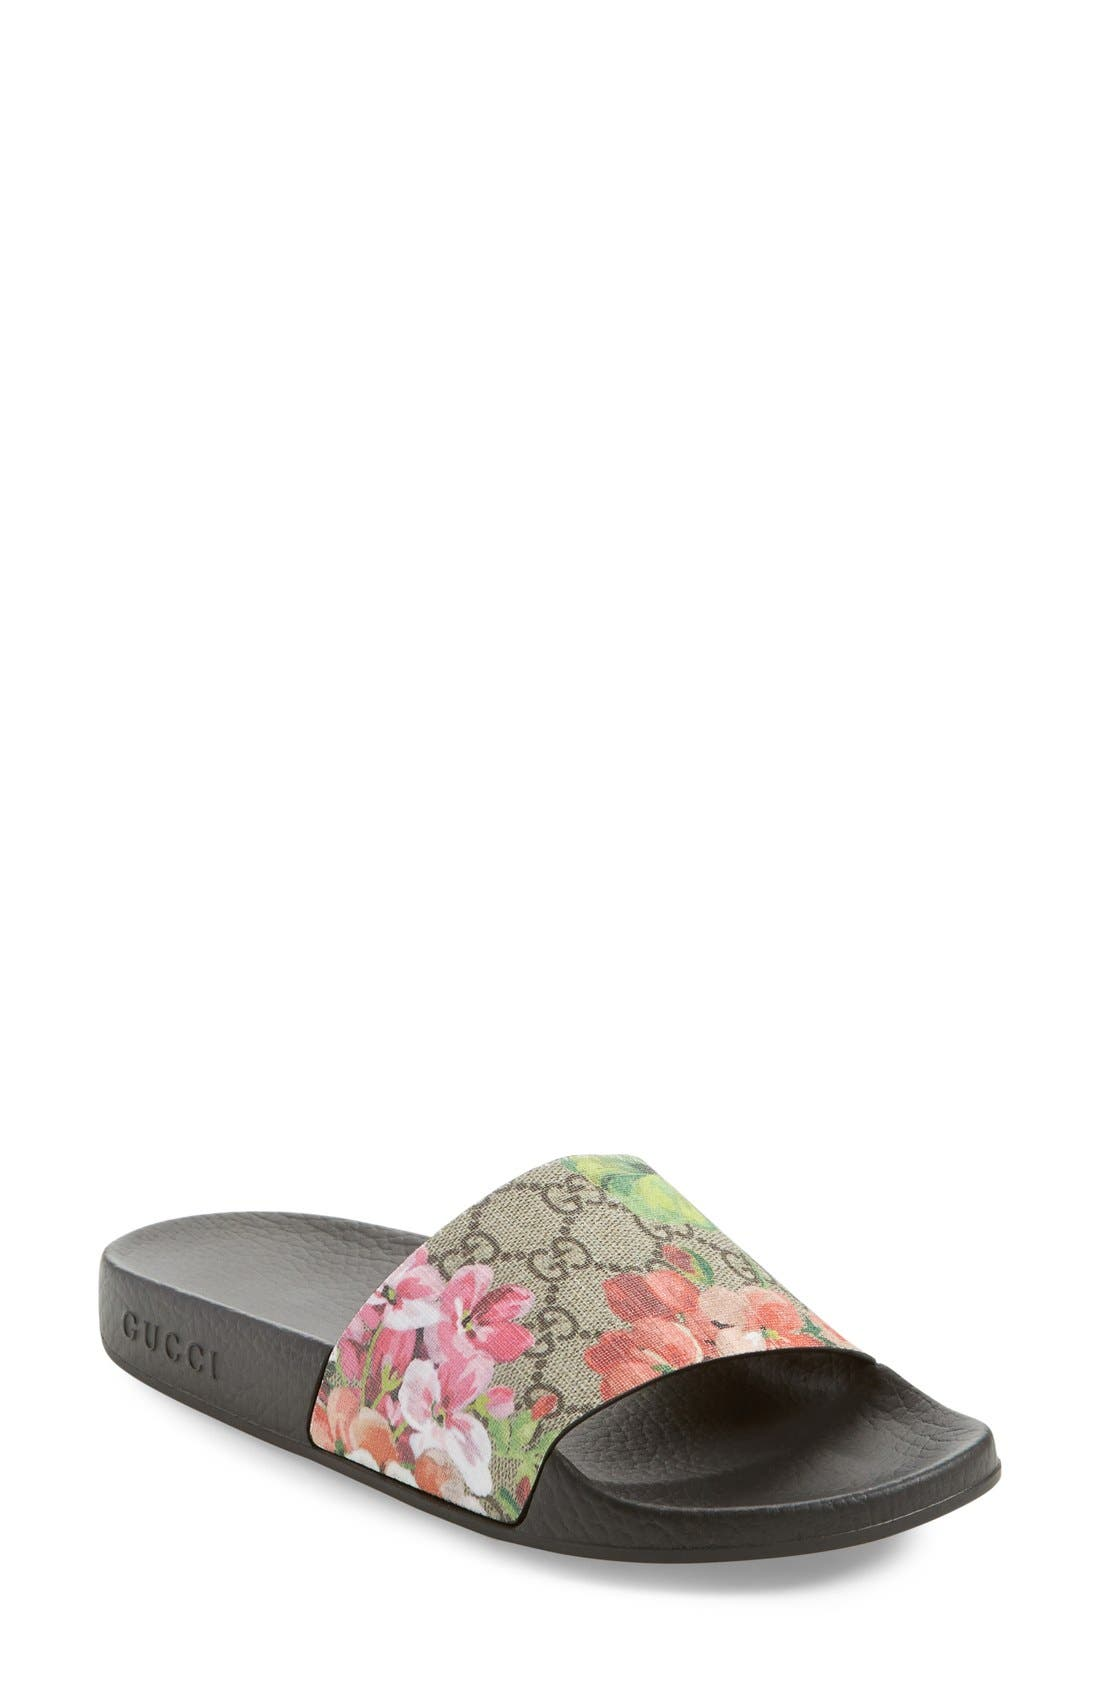 Gucci Slide Sandal (Women)